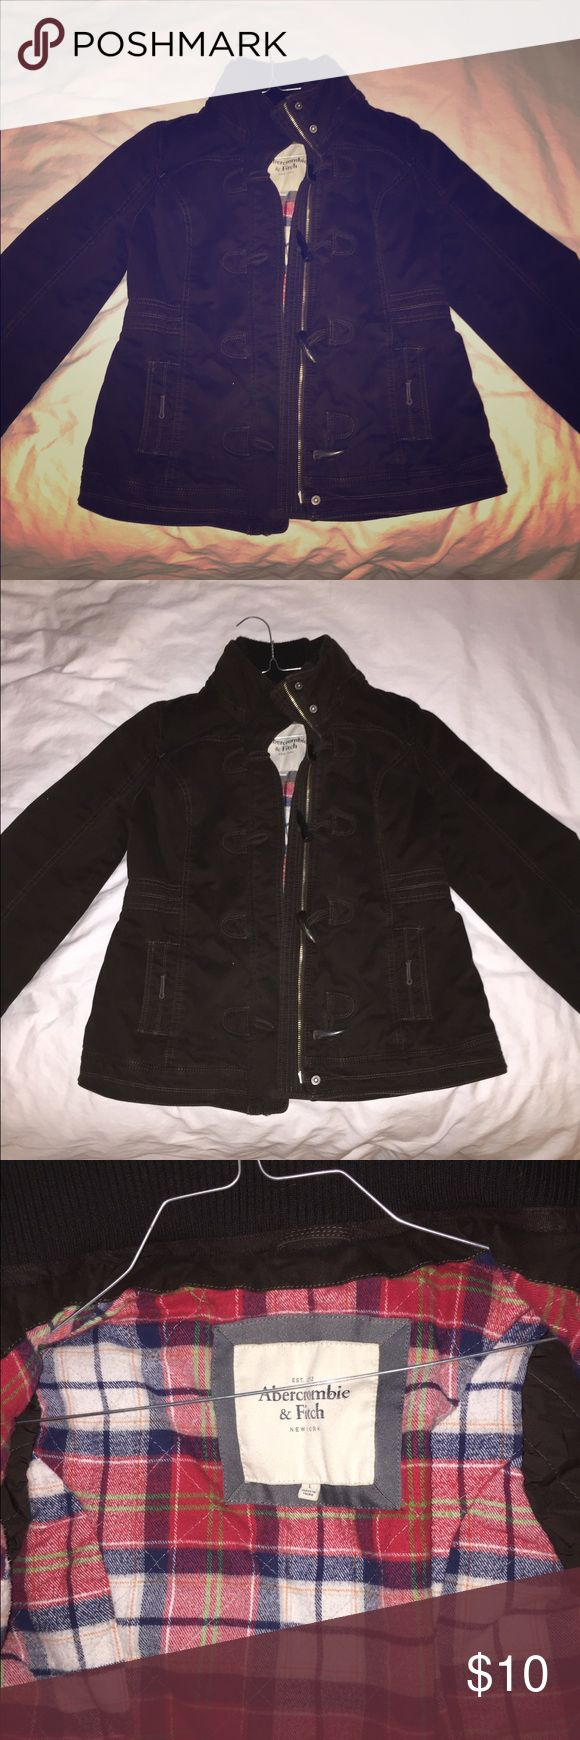 Abercrombie and fitch coat This is a brown women's large coat from Abercrombie and fitch. True to size. Zipper does not work. Abercrombie & Fitch Jackets & Coats